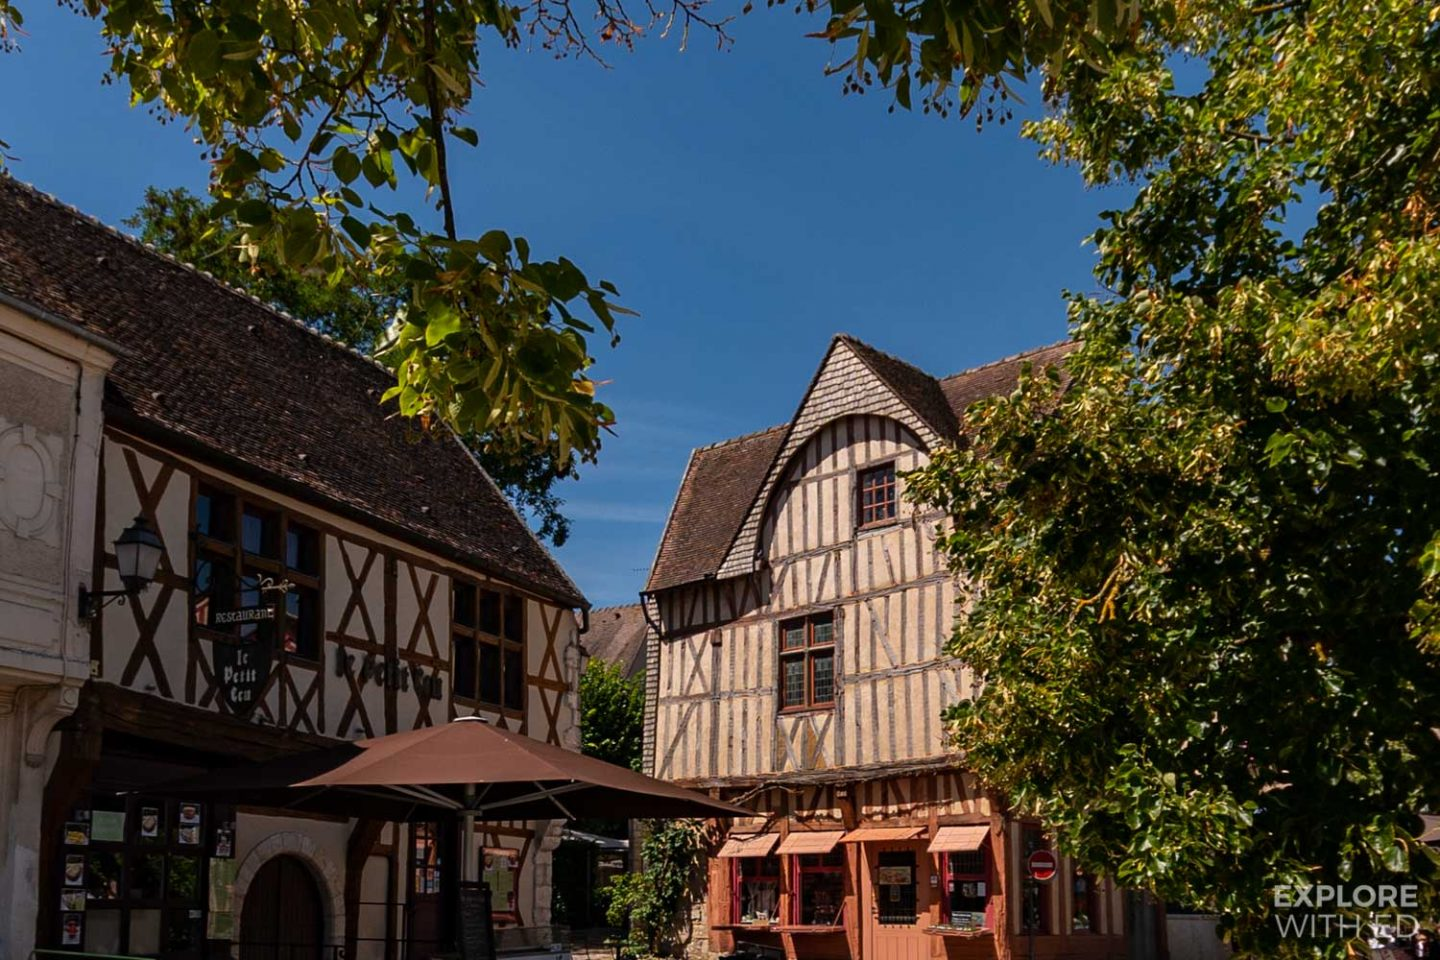 Place du Chatel in Provins